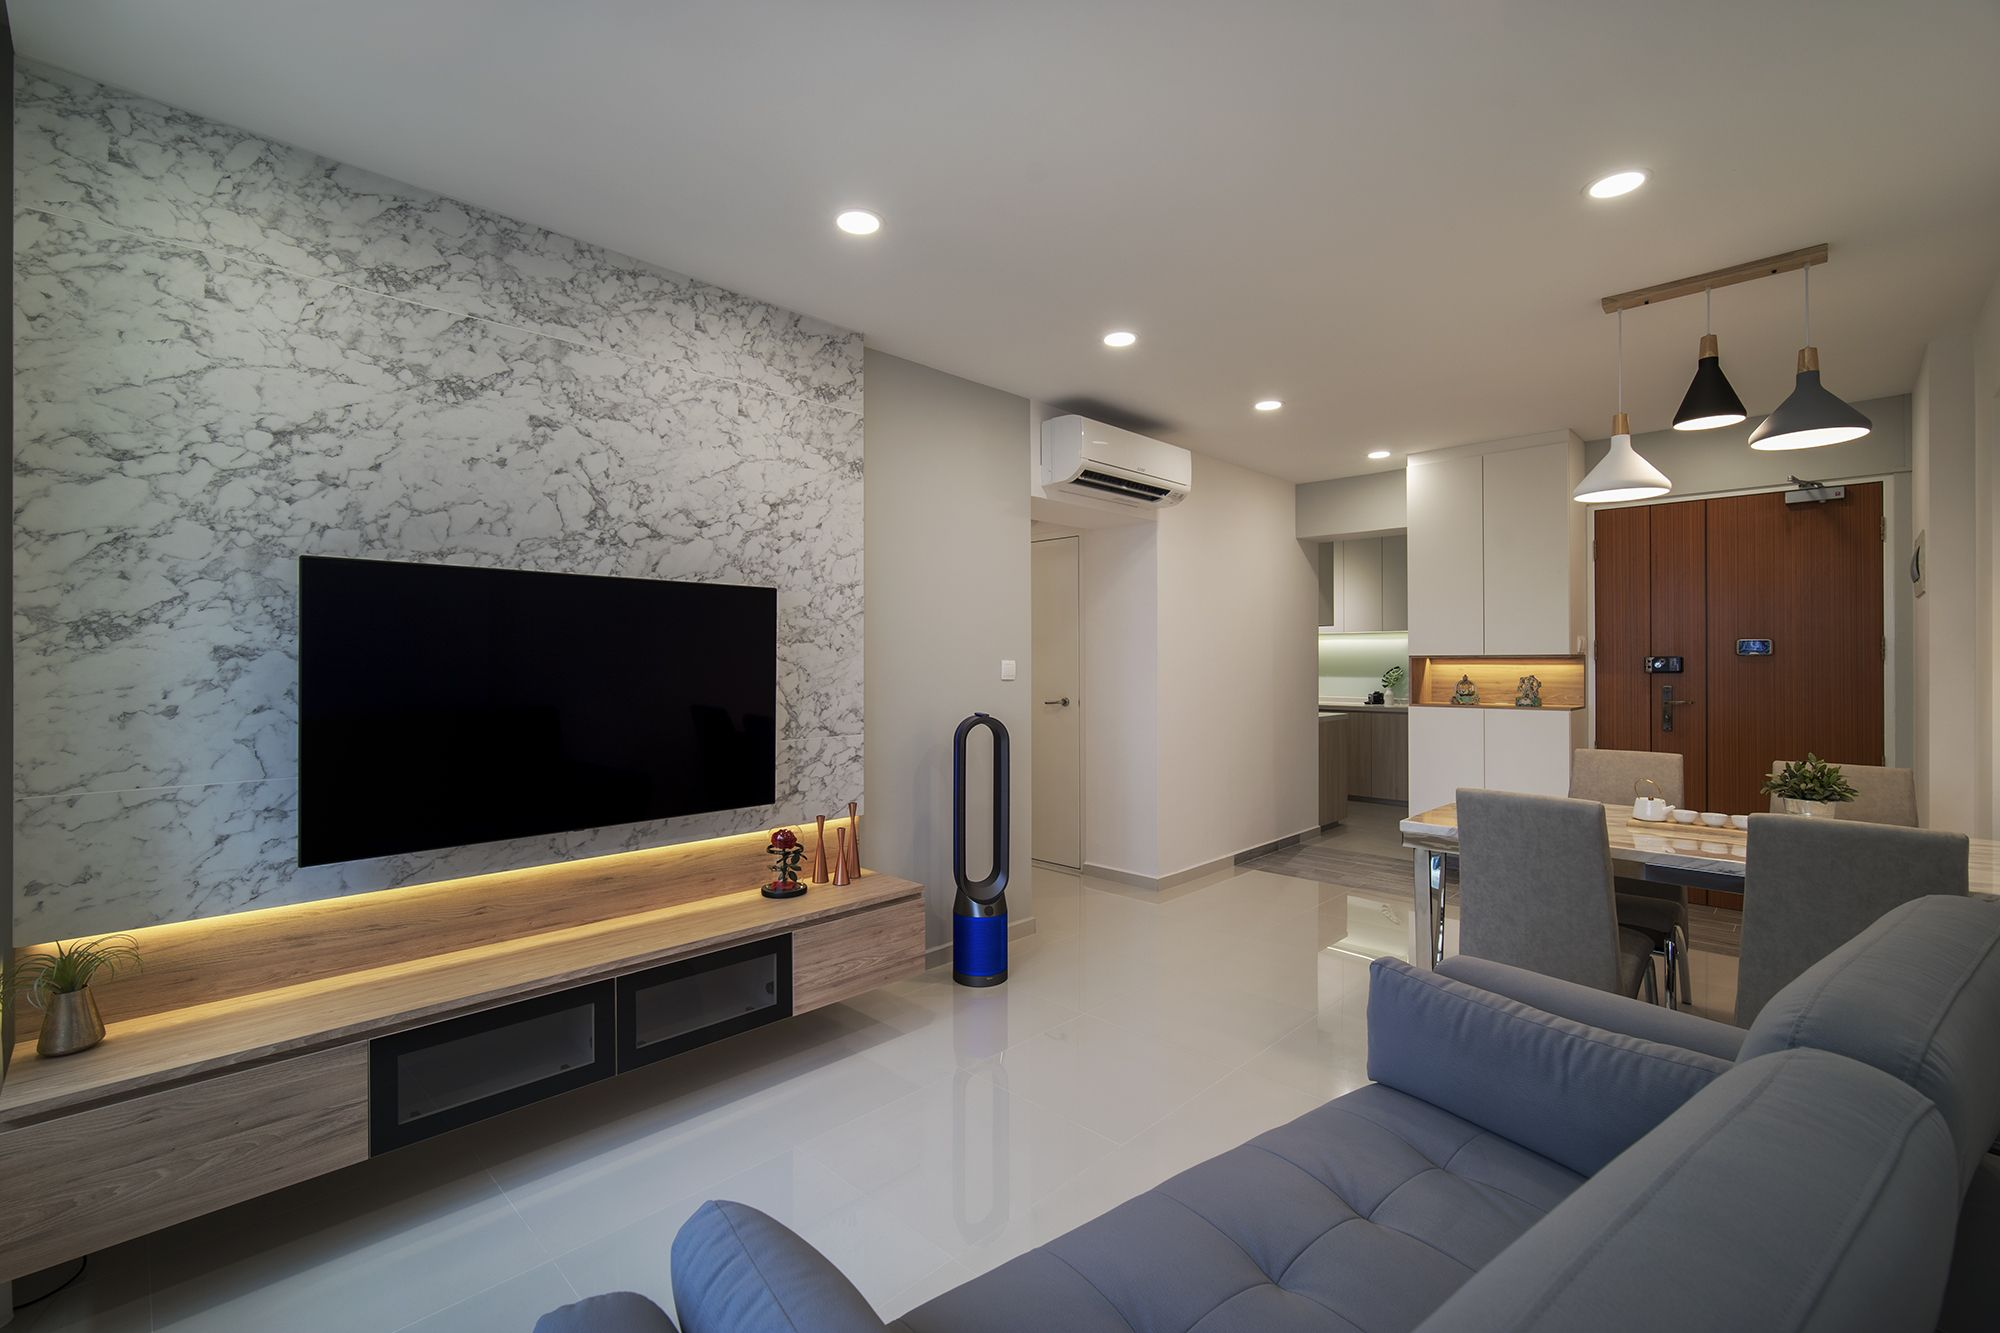 Singapore Interior Design Upgrades New Hdb Flats To Look Like Condos